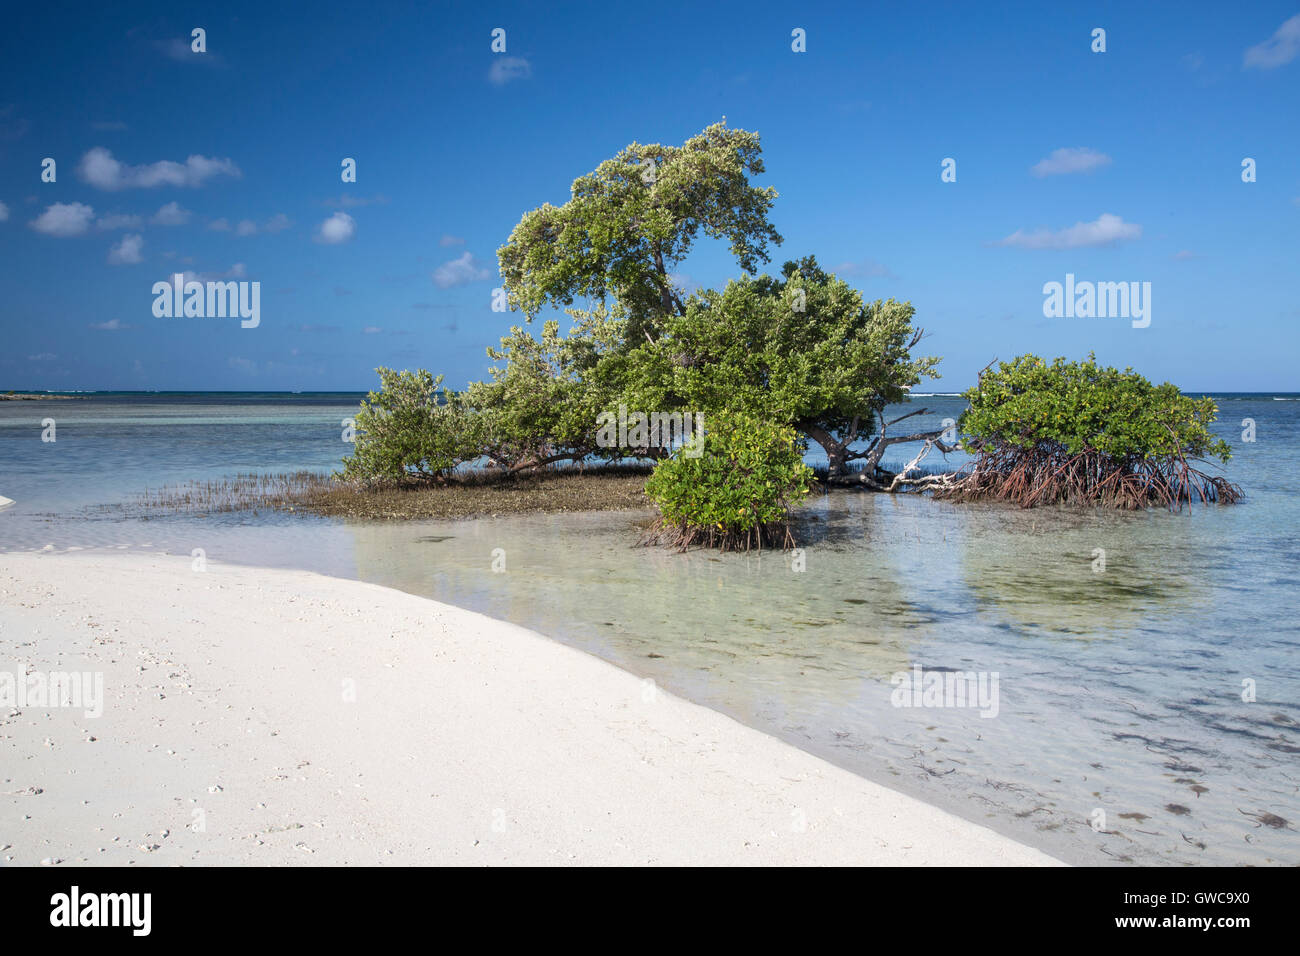 view of Grand Turk Island in Turks and Caicos Islands - Stock Image